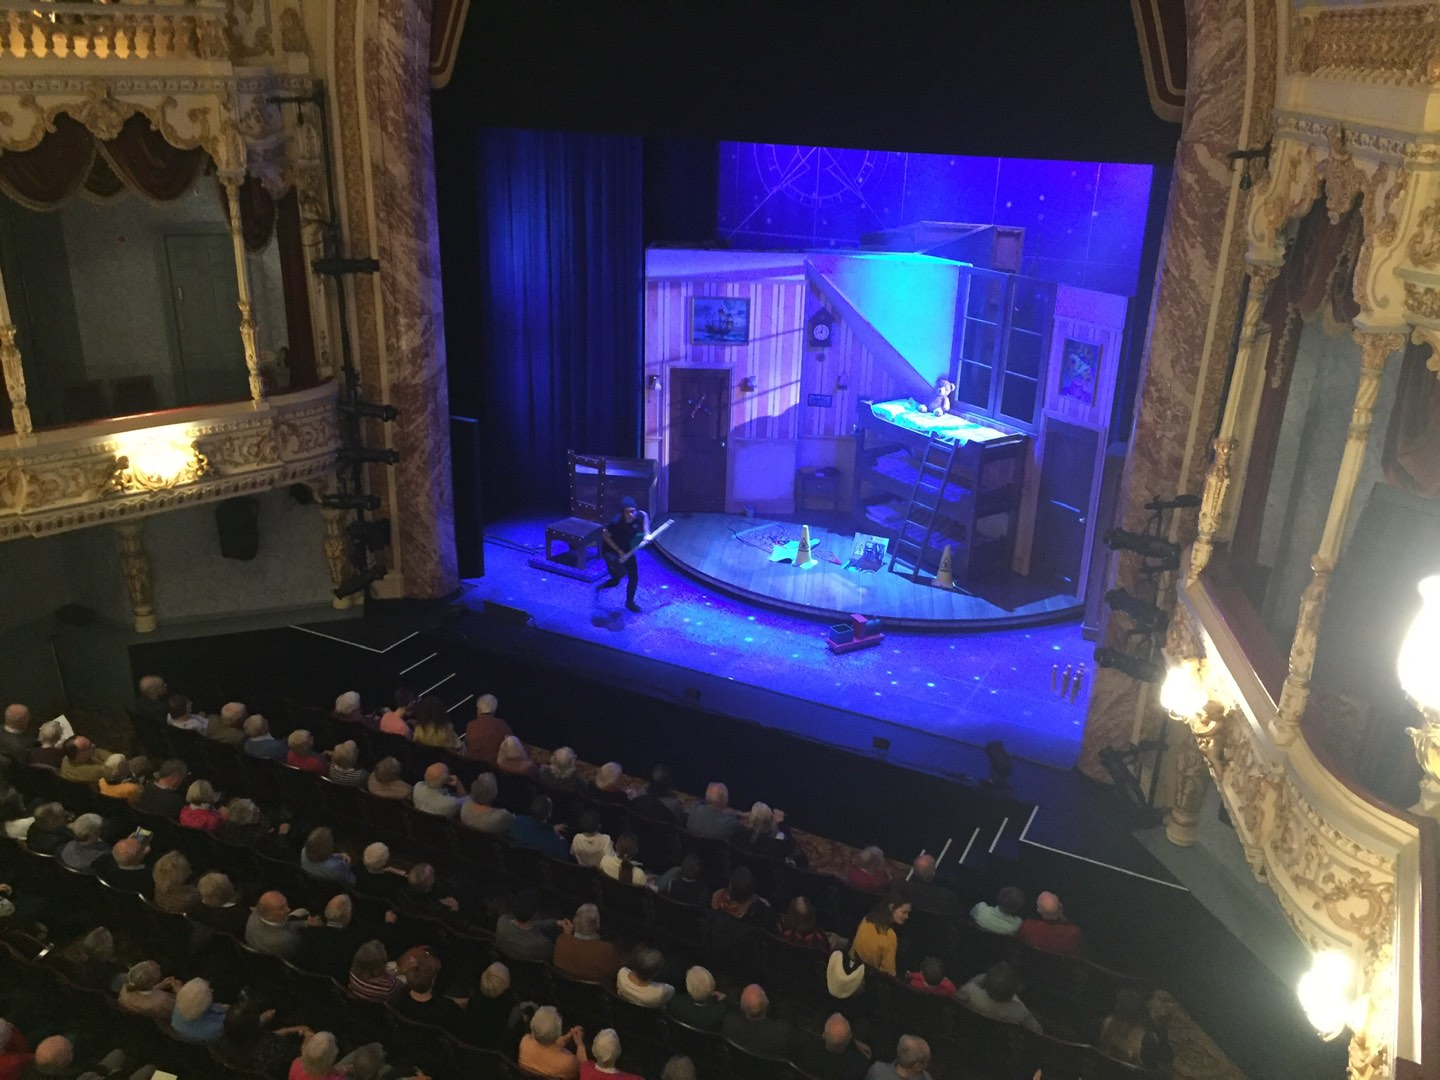 Everyman Theatre Section Upper Circle Row A Seat 30